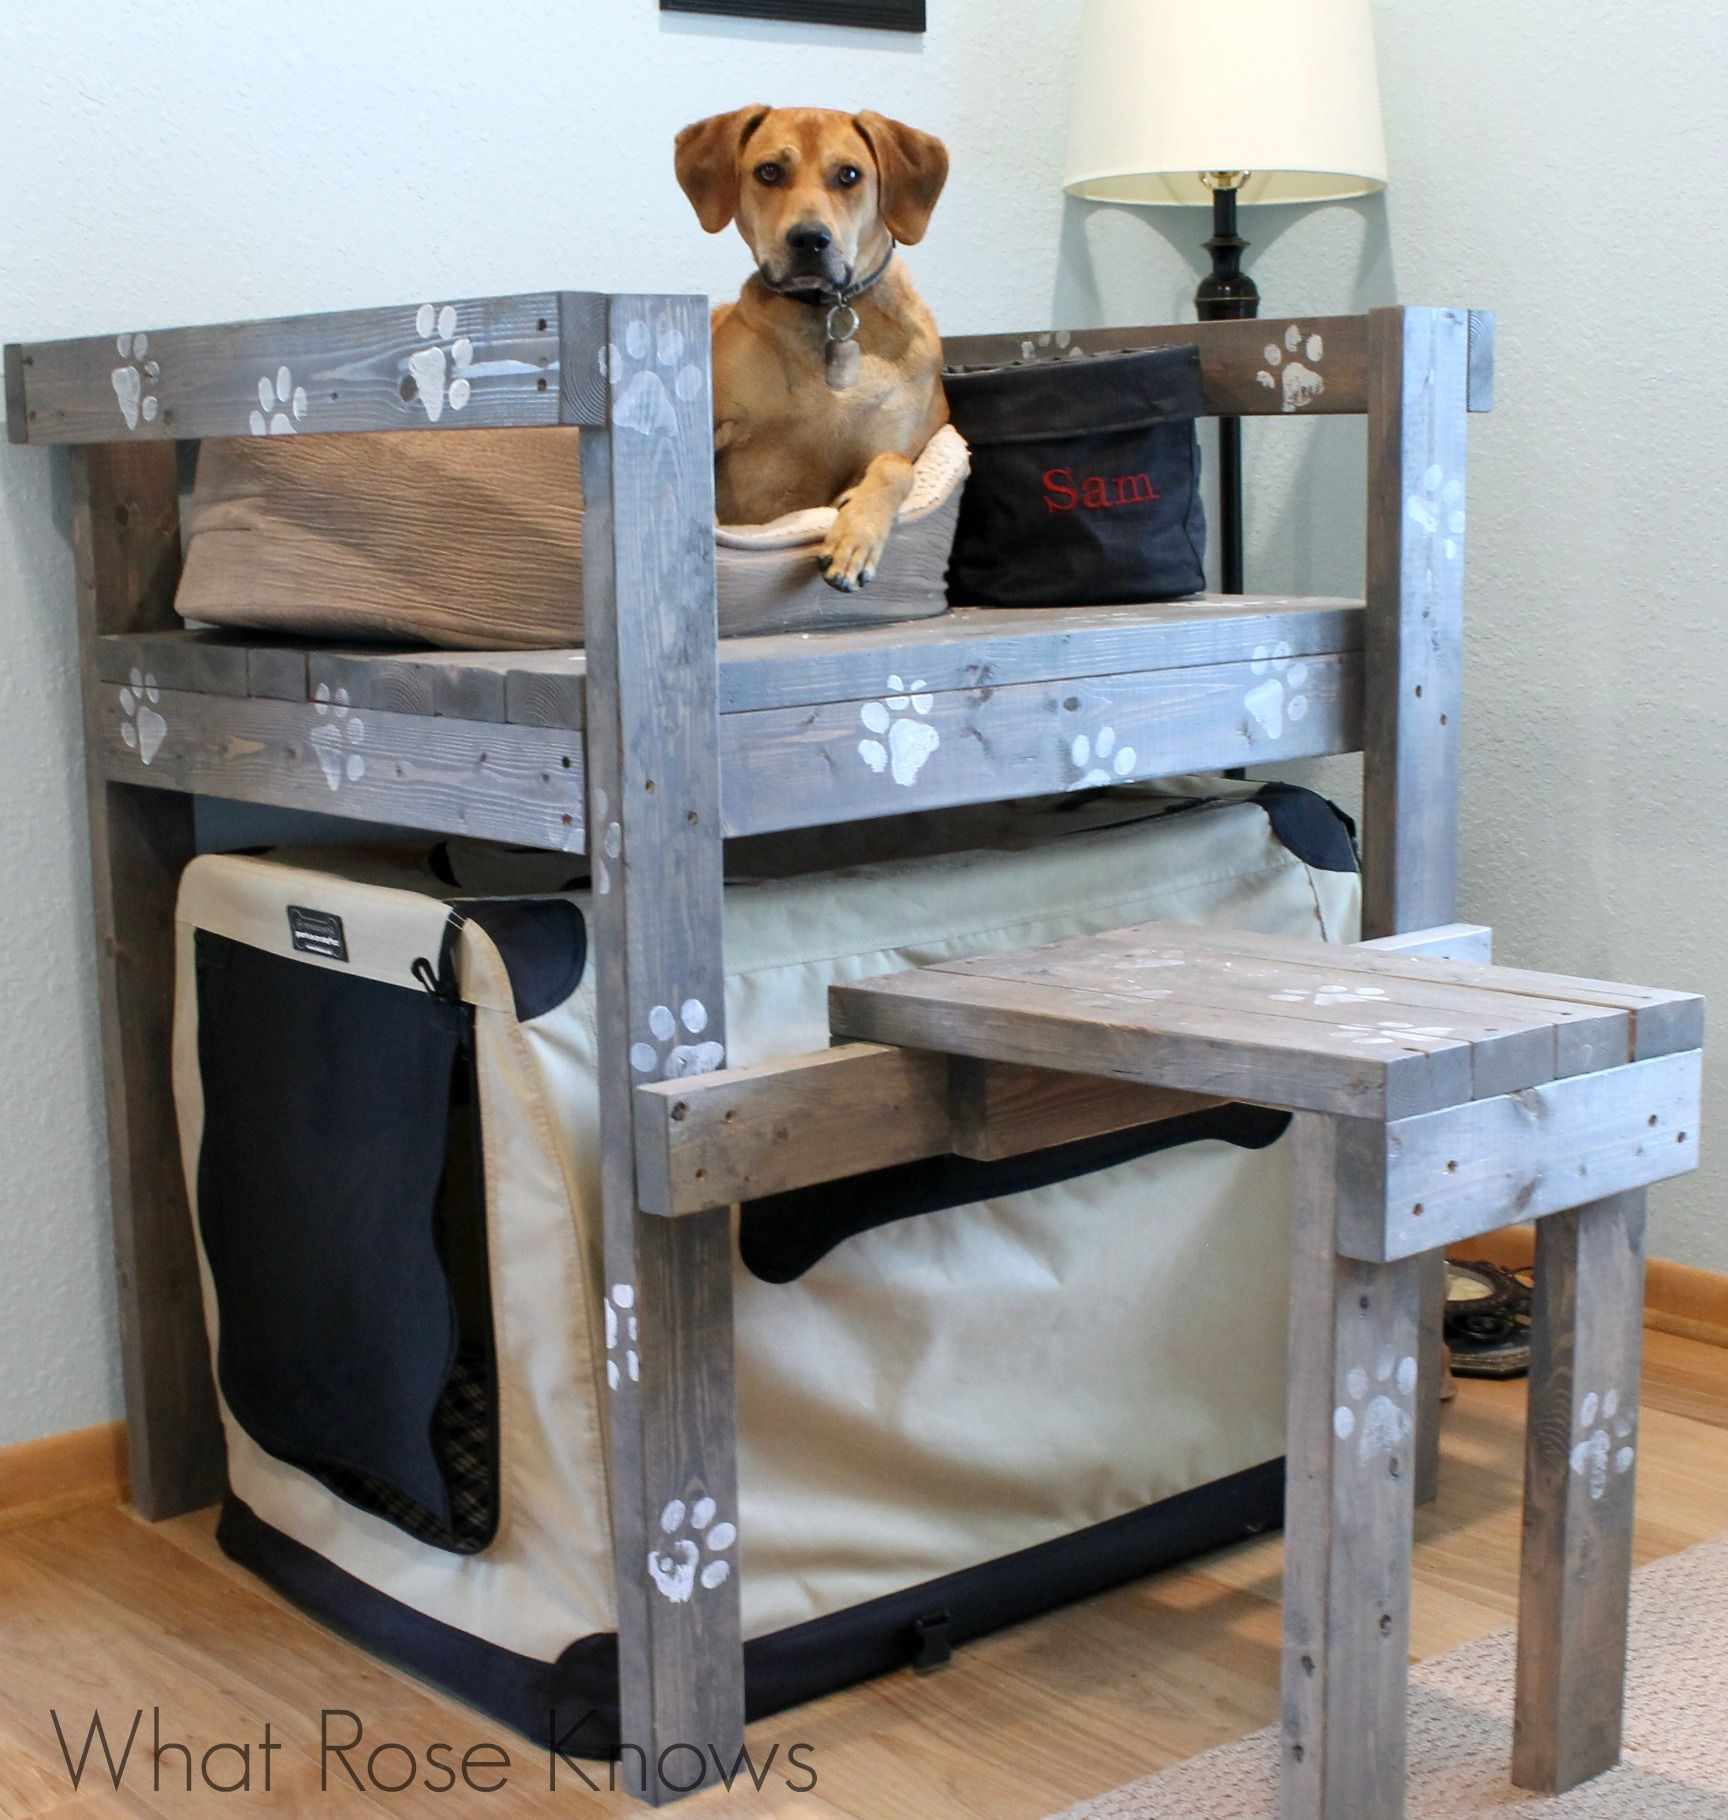 Space Bunk Beds dog bunk bed idea | bunk bed, window and dog